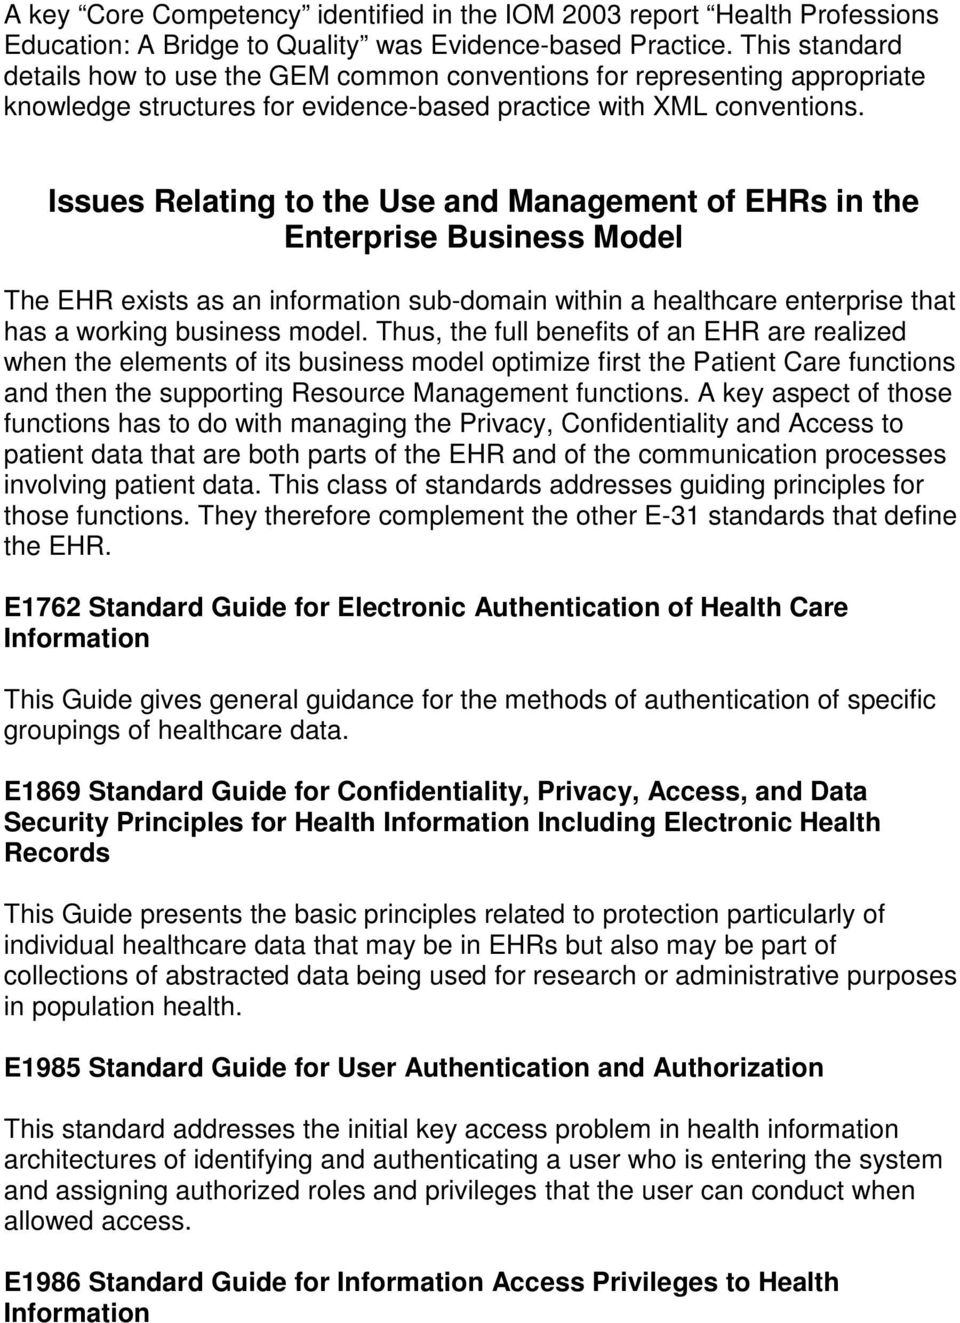 Issues Relating to the Use and Management of EHRs in the Enterprise Business Model The EHR exists as an information sub-domain within a healthcare enterprise that has a working business model.